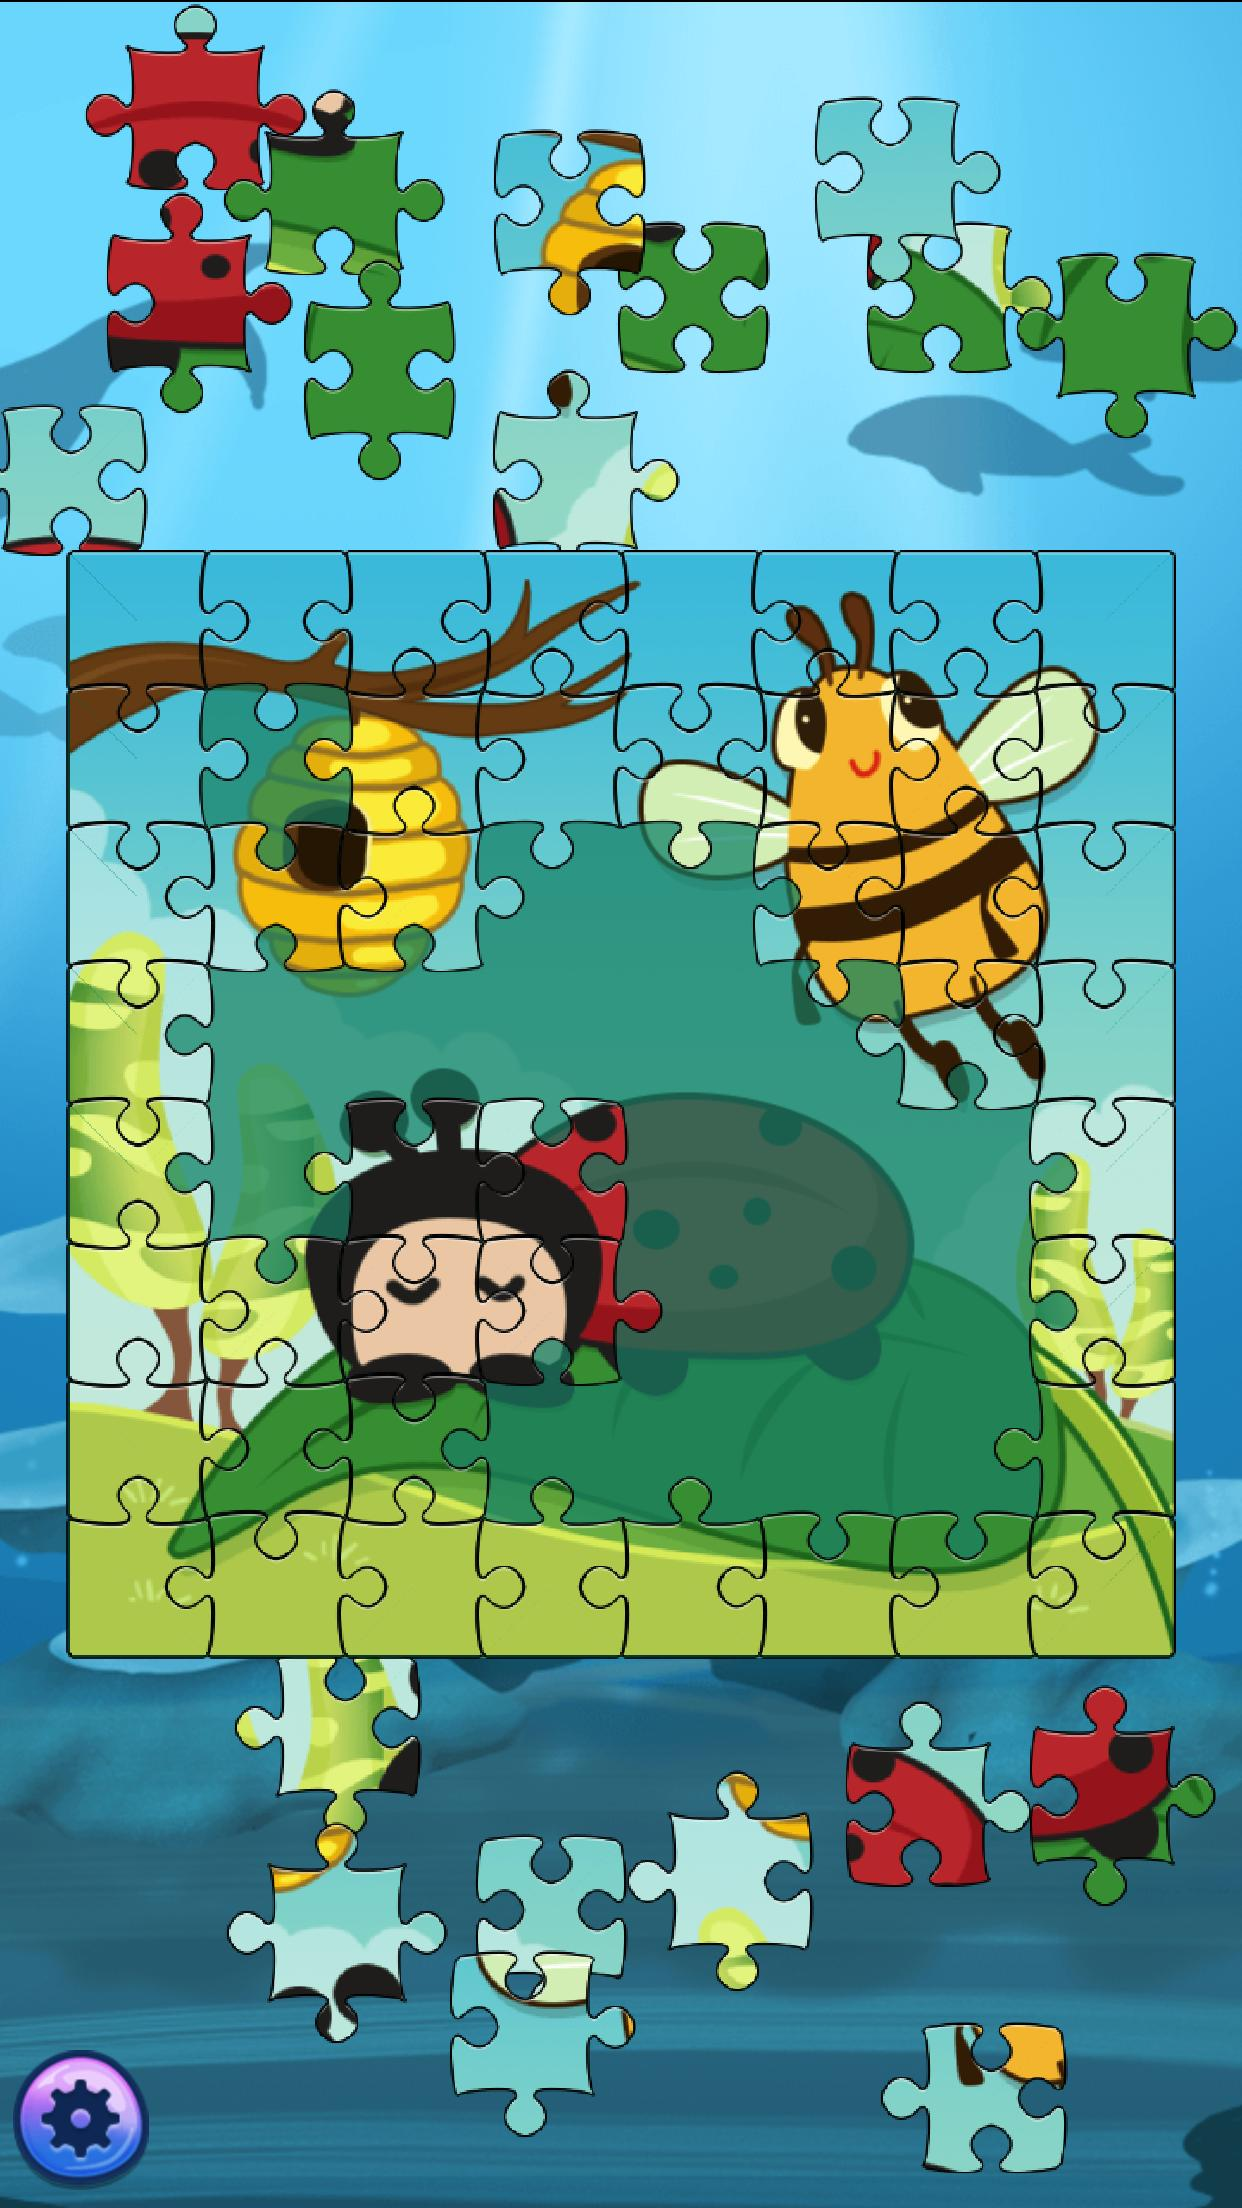 The Mystic Puzzland - Griddlers & Nonogram Puzzles 1.0.26 Screenshot 8